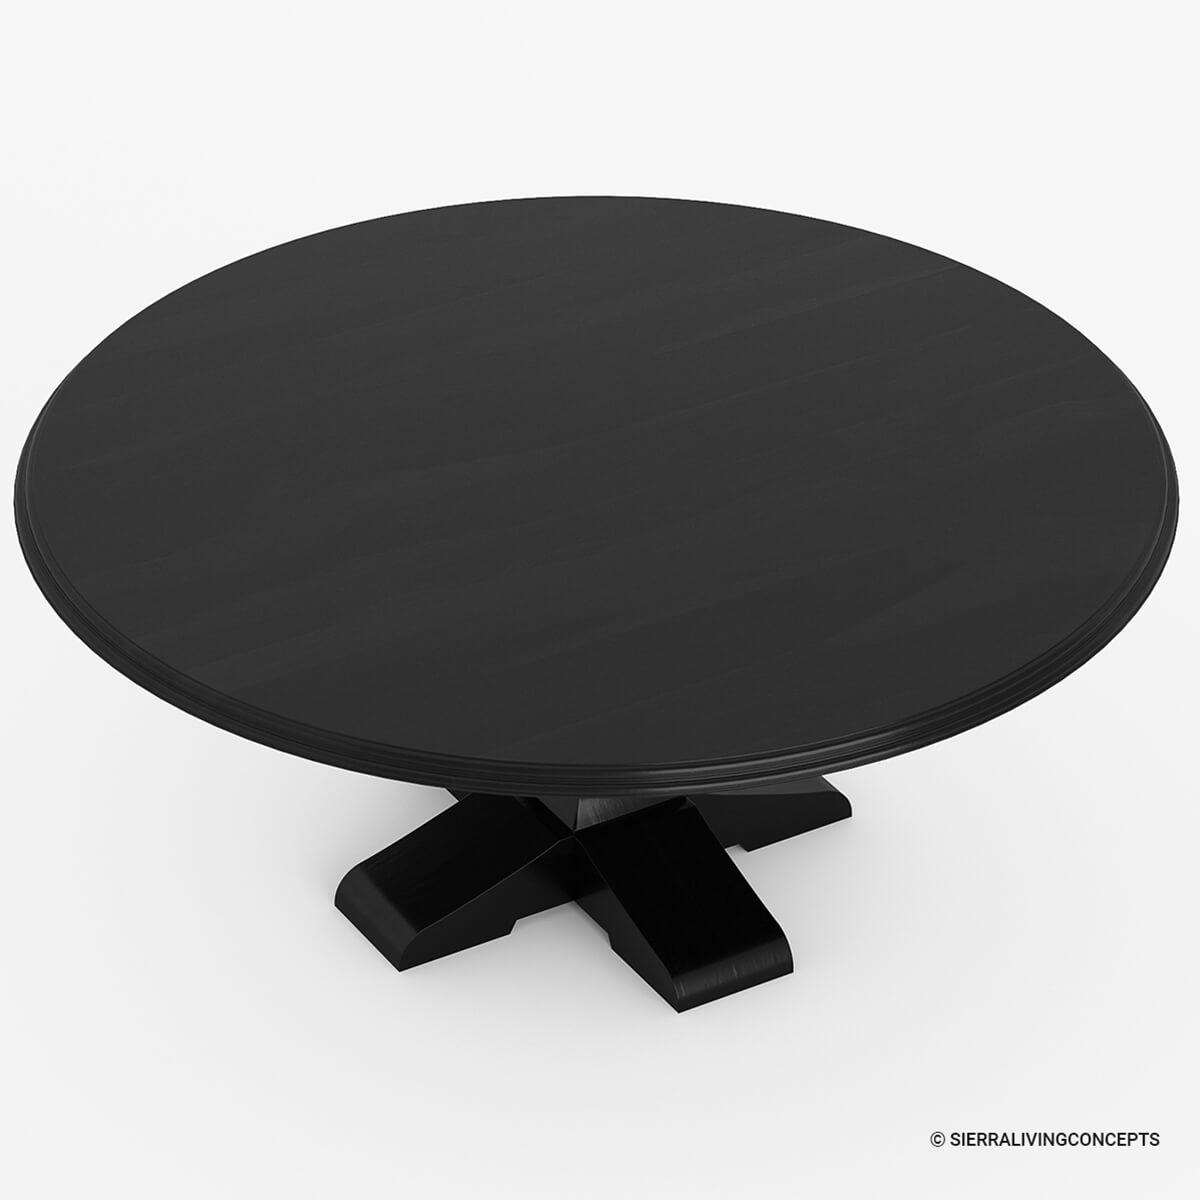 Sierra nevada rustic solid wood large round dining table for 10 person round table dimensions